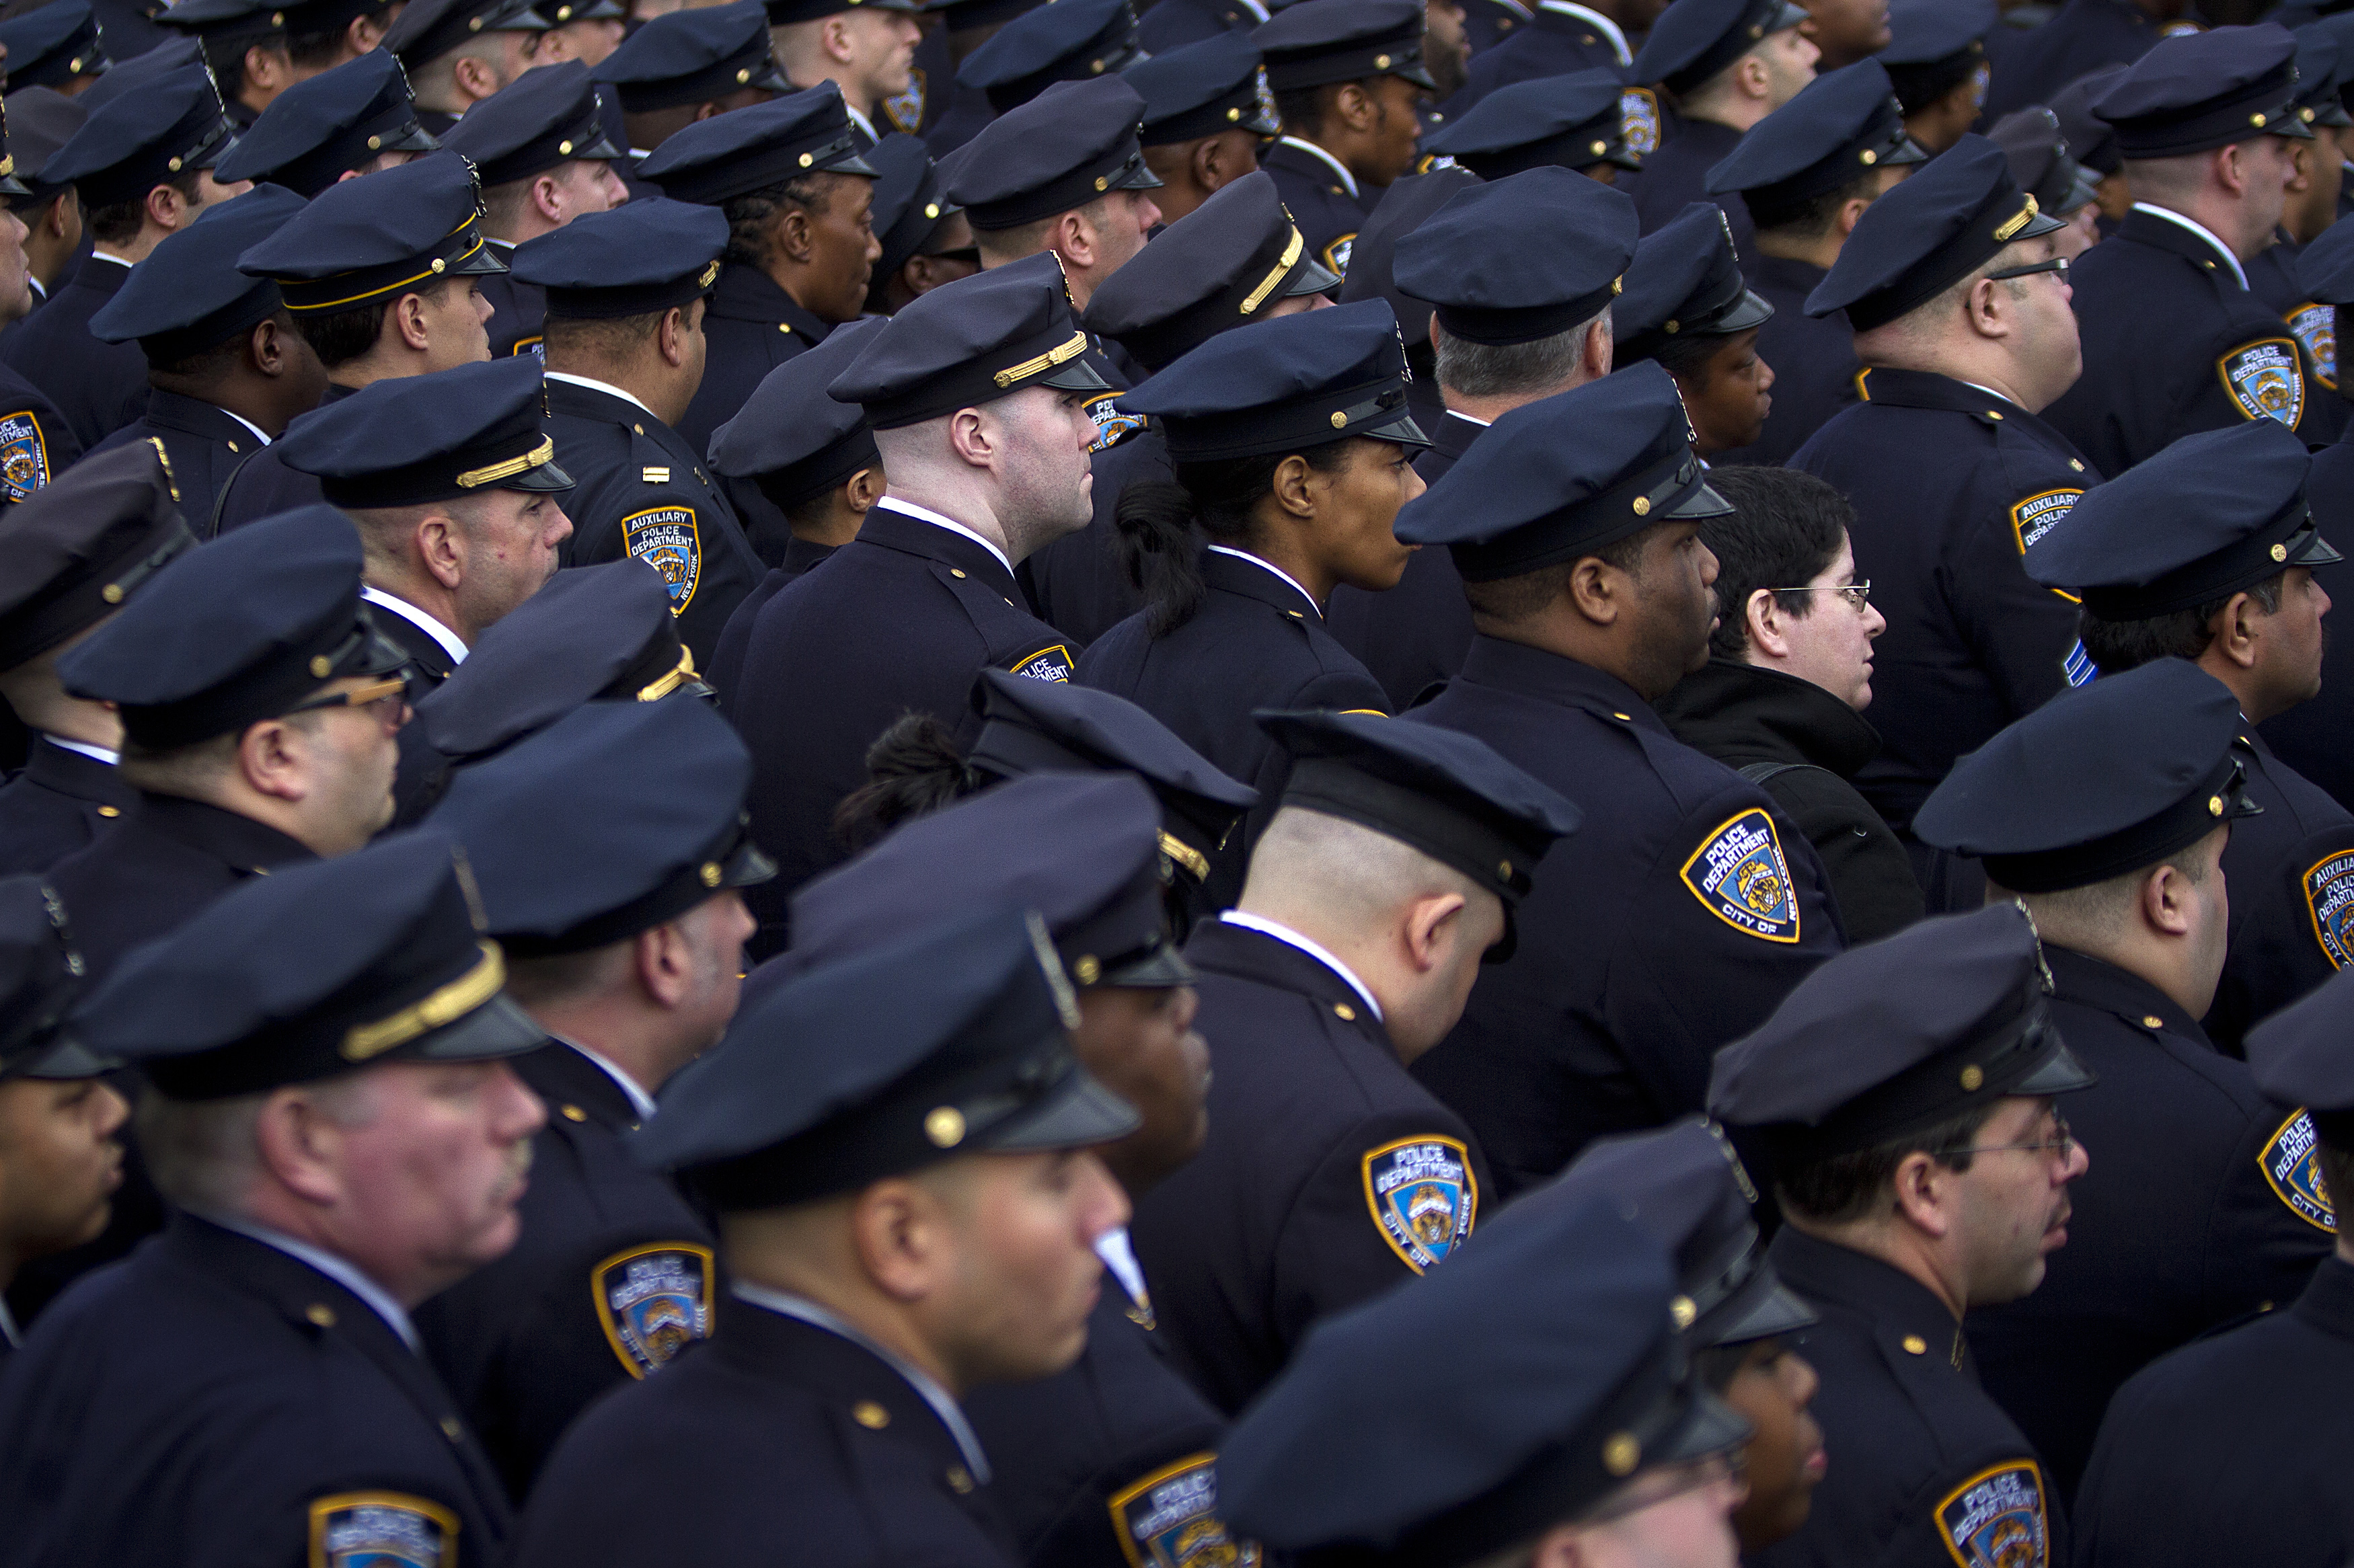 Police officers from the 84th Precinct listen during the funeral for slain New York Police Department officer Wenjian Liu in the Brooklyn borough of New York January 4, 2015.